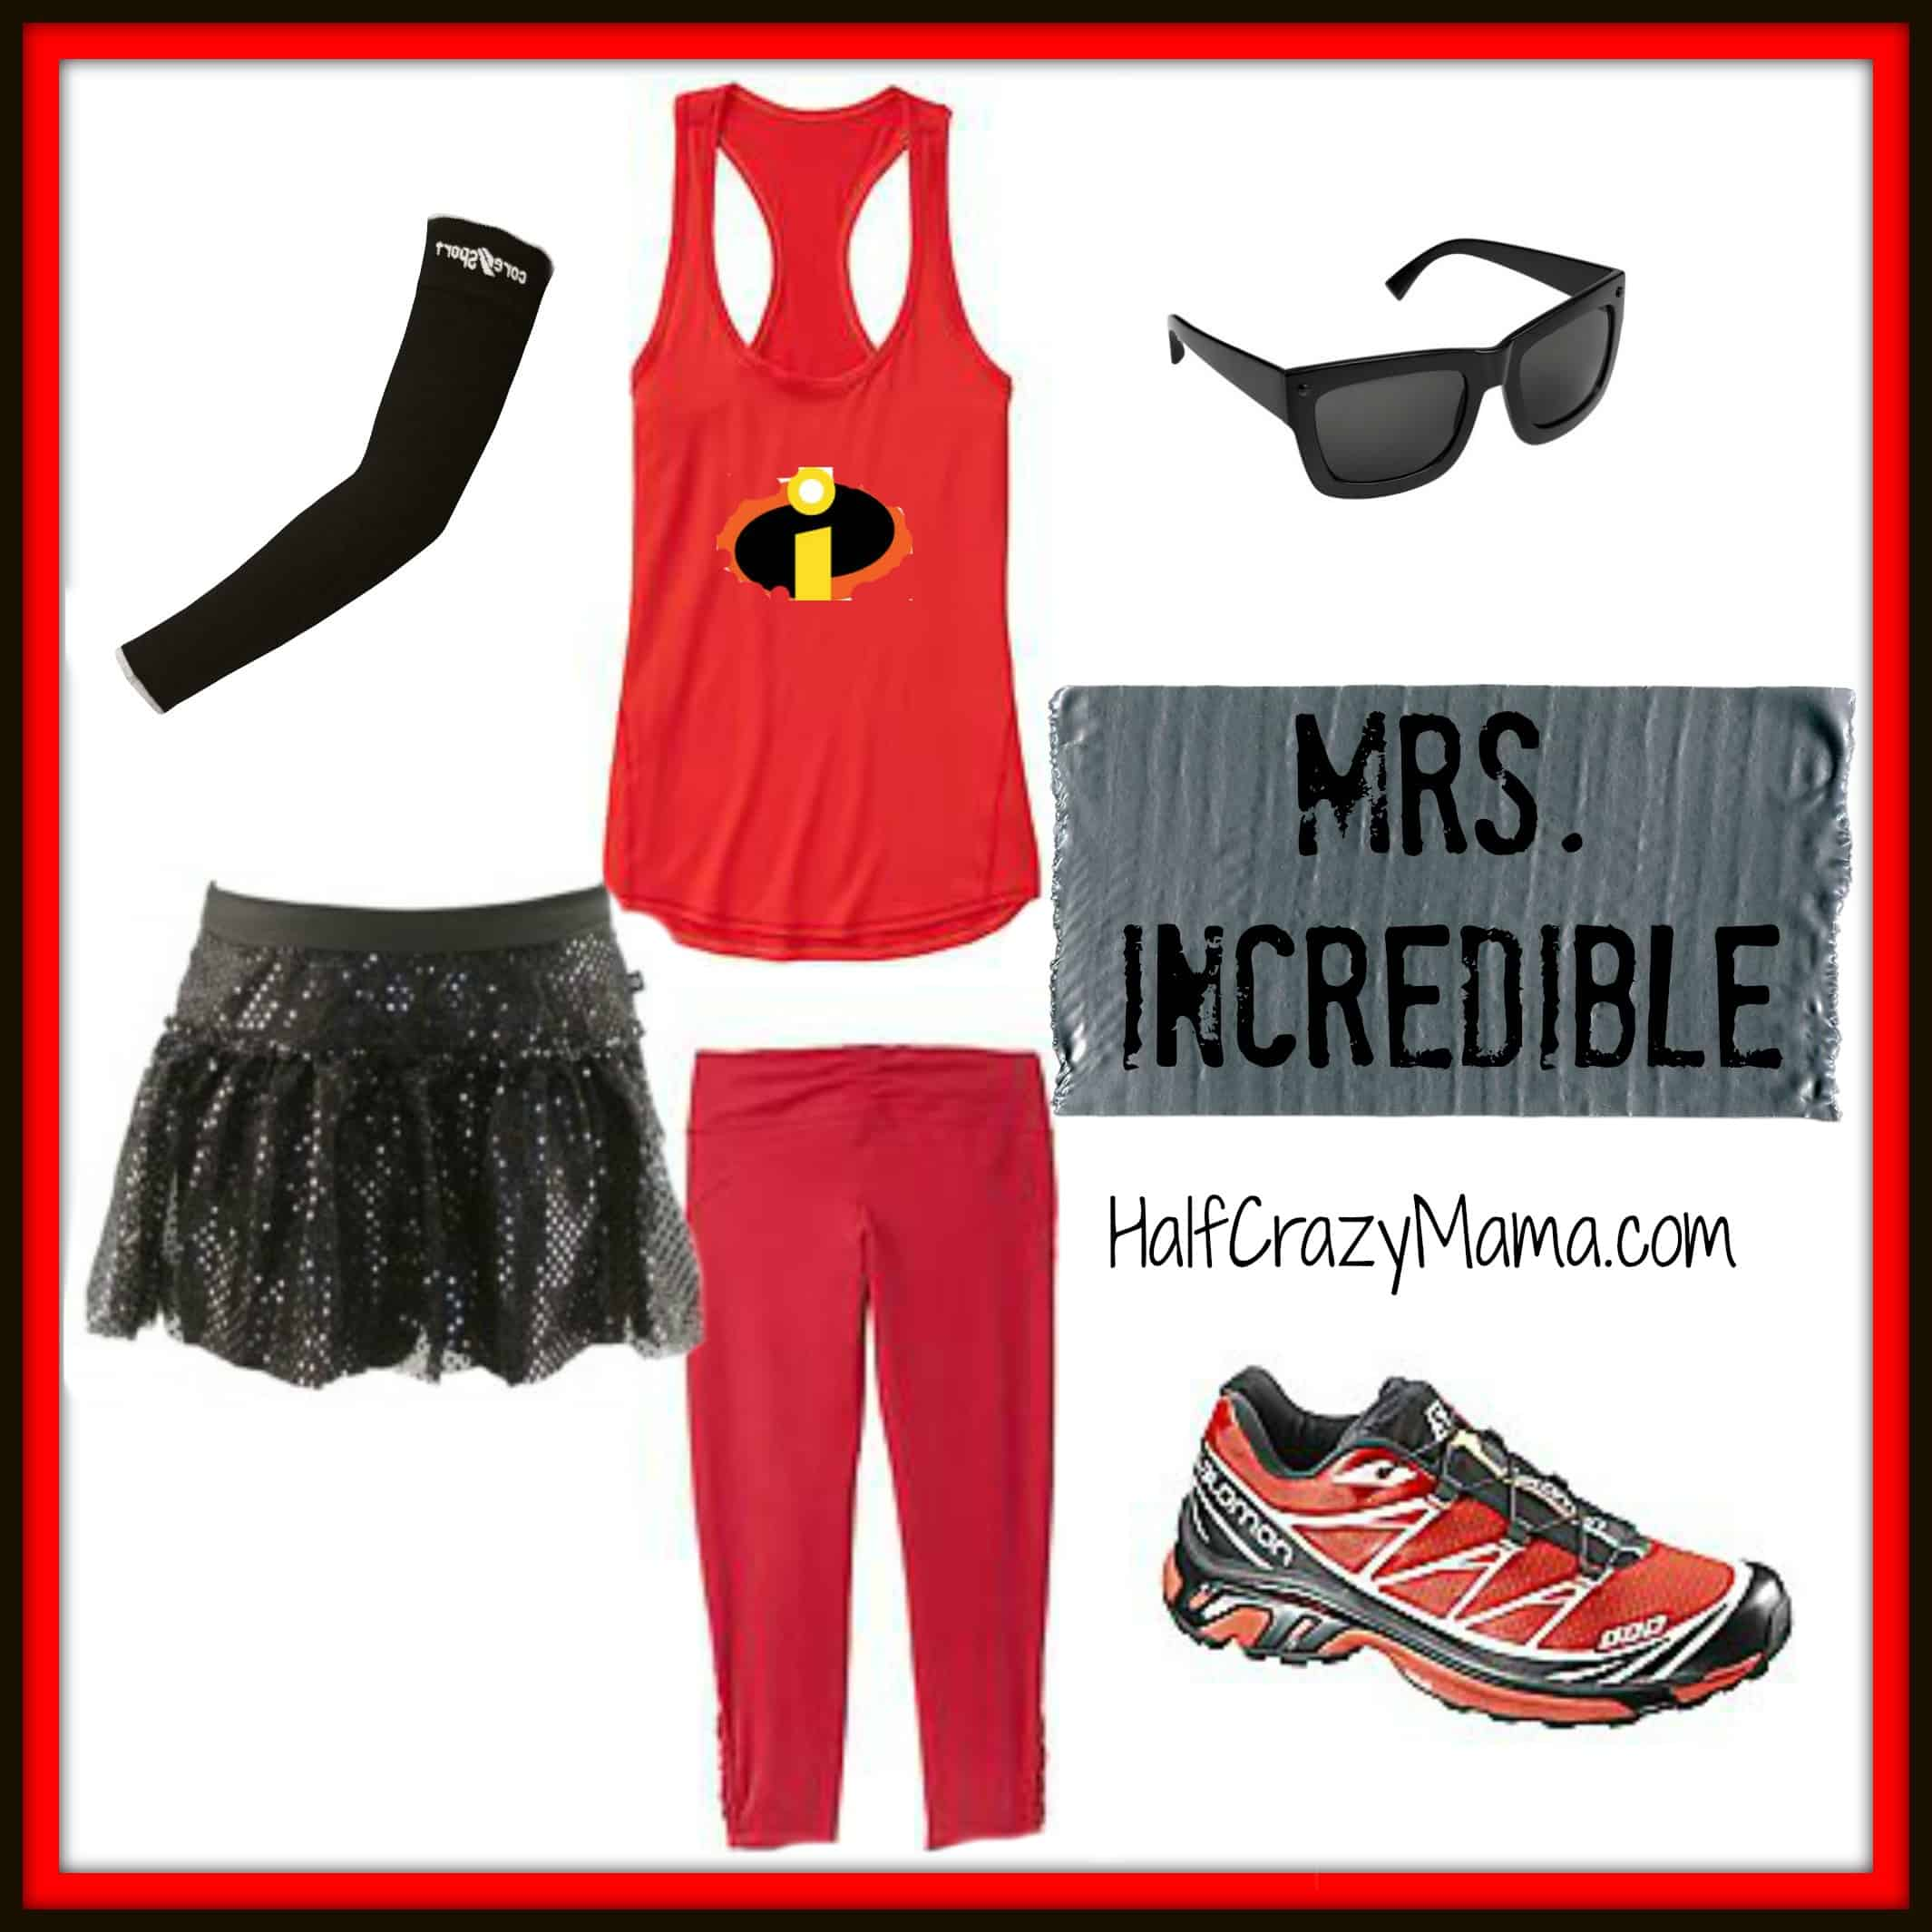 Mrs Incredible run costume